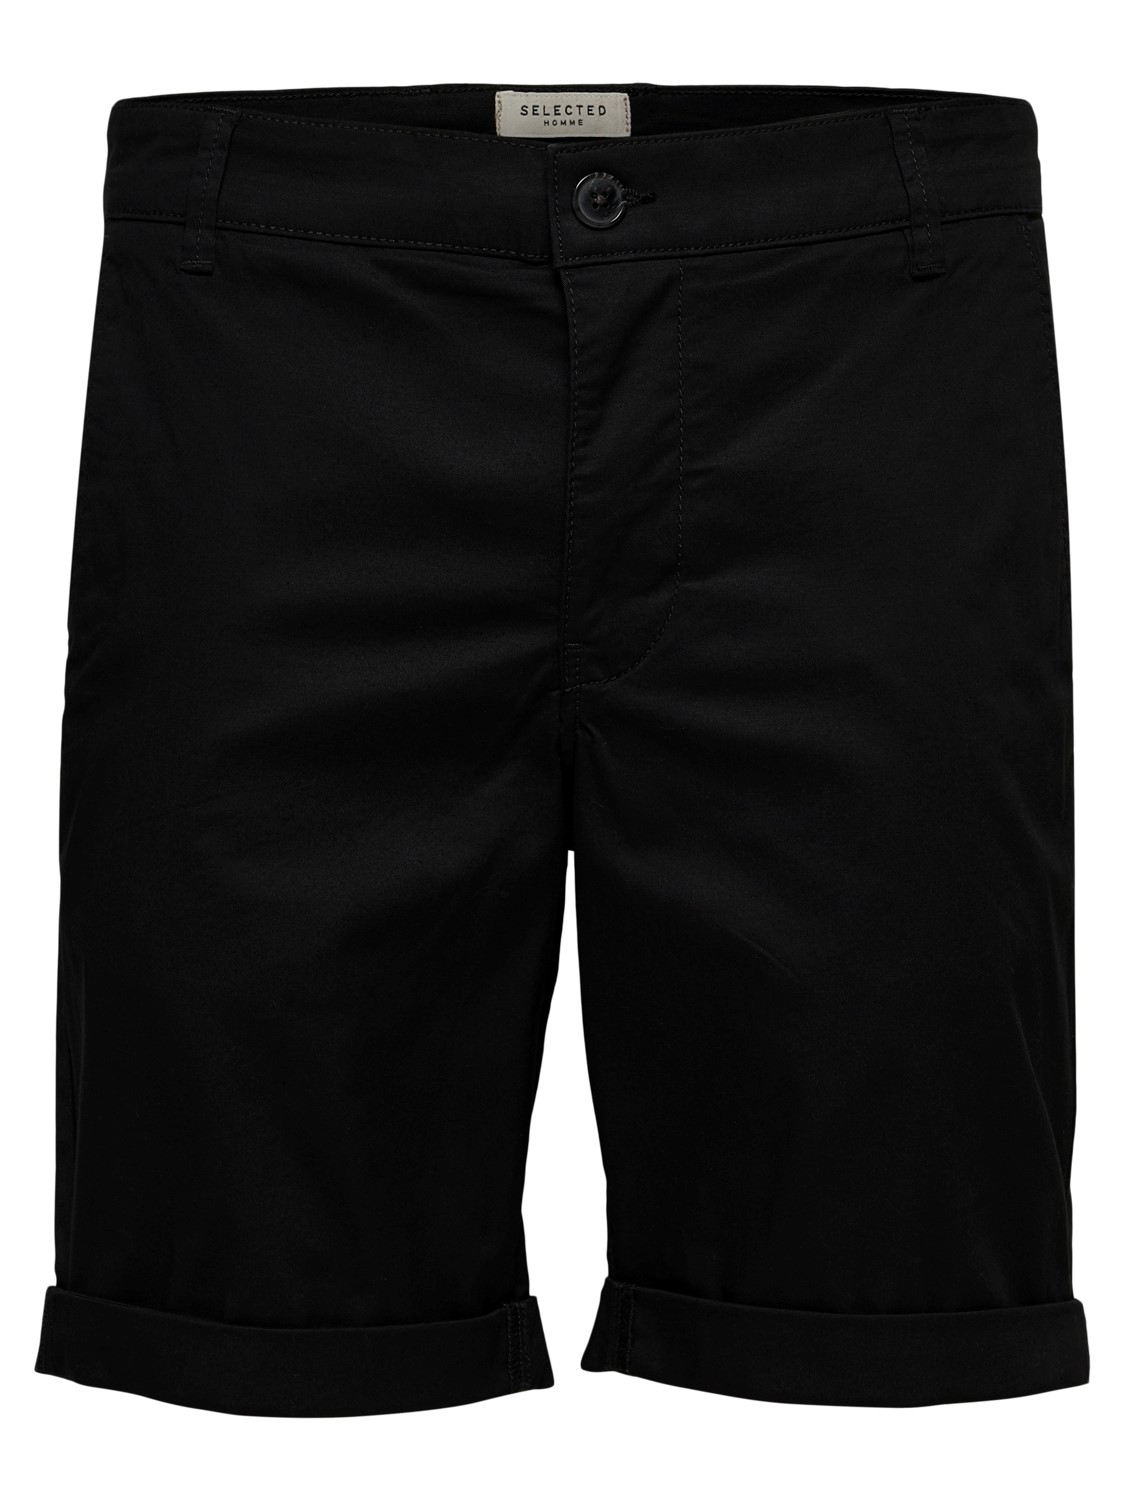 Selected - Chino Shorts Black | GATE 36 Hobro